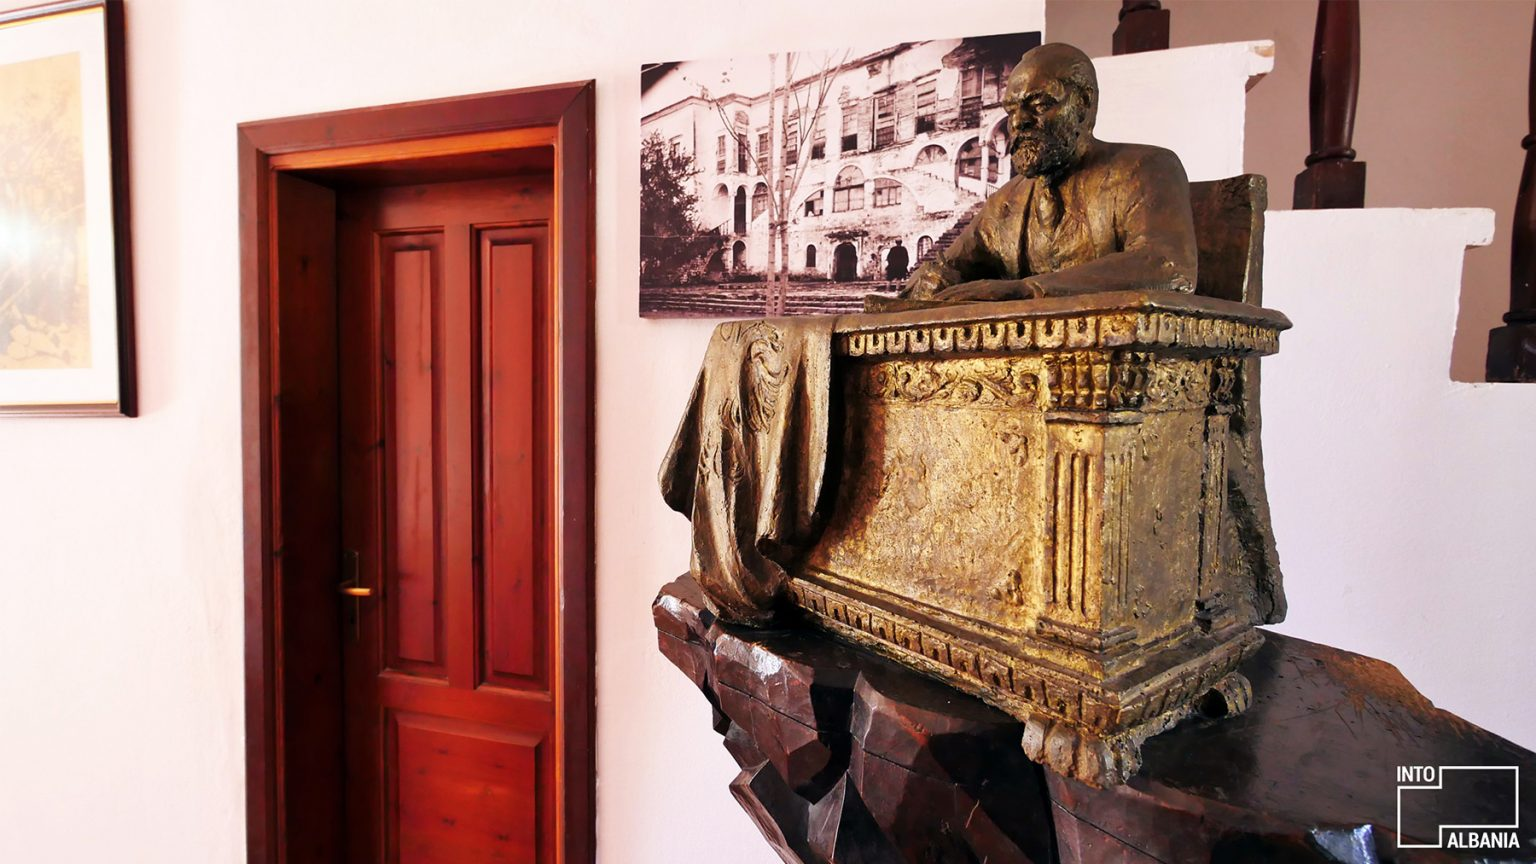 National Museum of Independence in Vlorë, photo by IntoAlbania